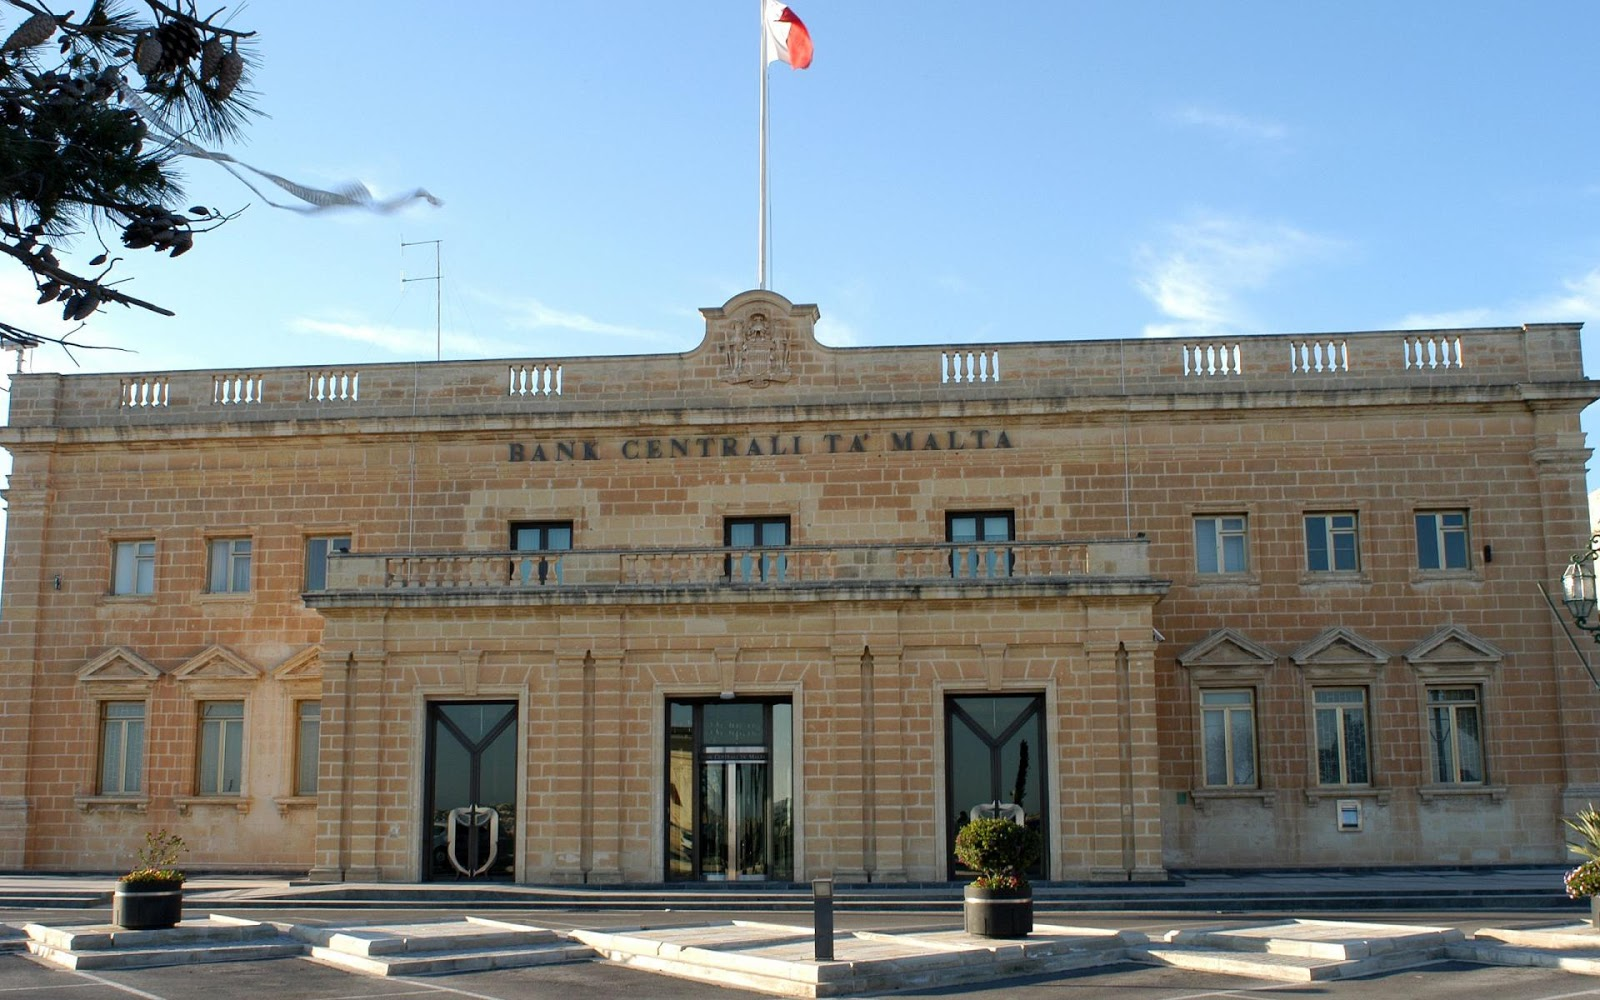 Central Bank of Valletta